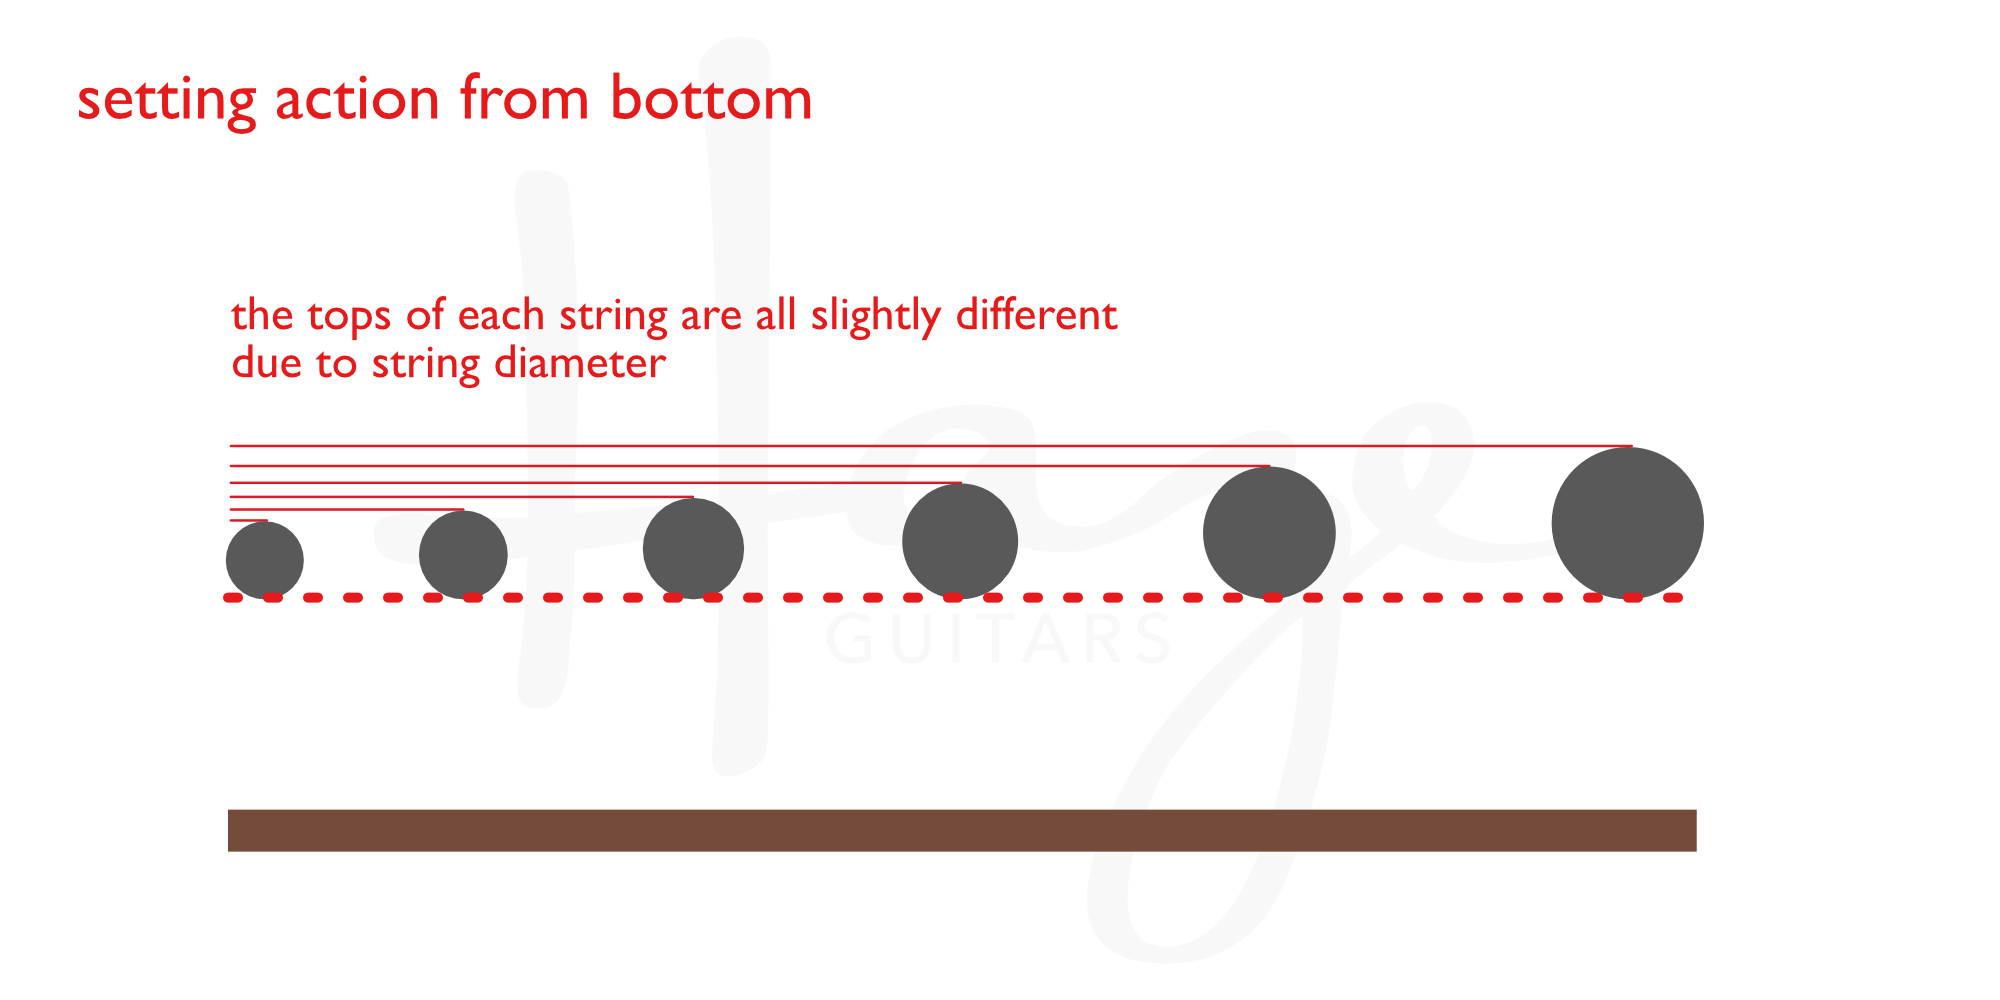 picture about String Action Gauge Printable named String radius versus the final or backside of strings Haze Guitars